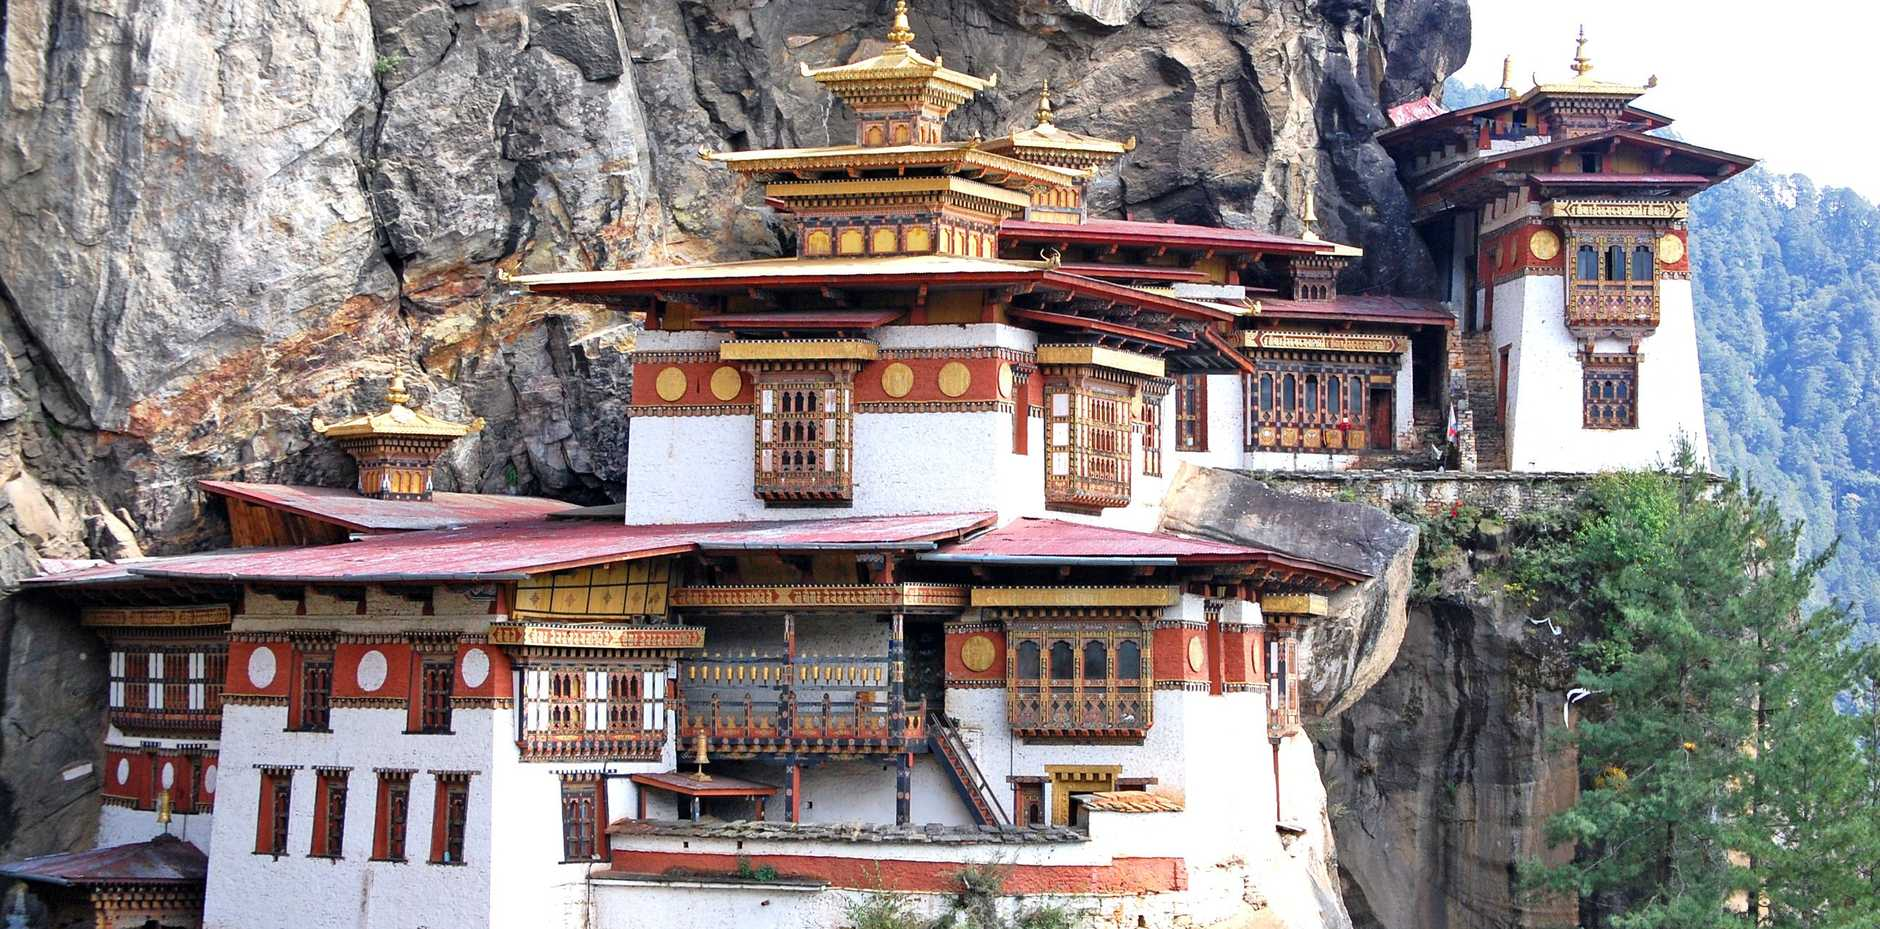 The new Assam and Bhutan tour will go two unspoilt and rarely visited destinations.